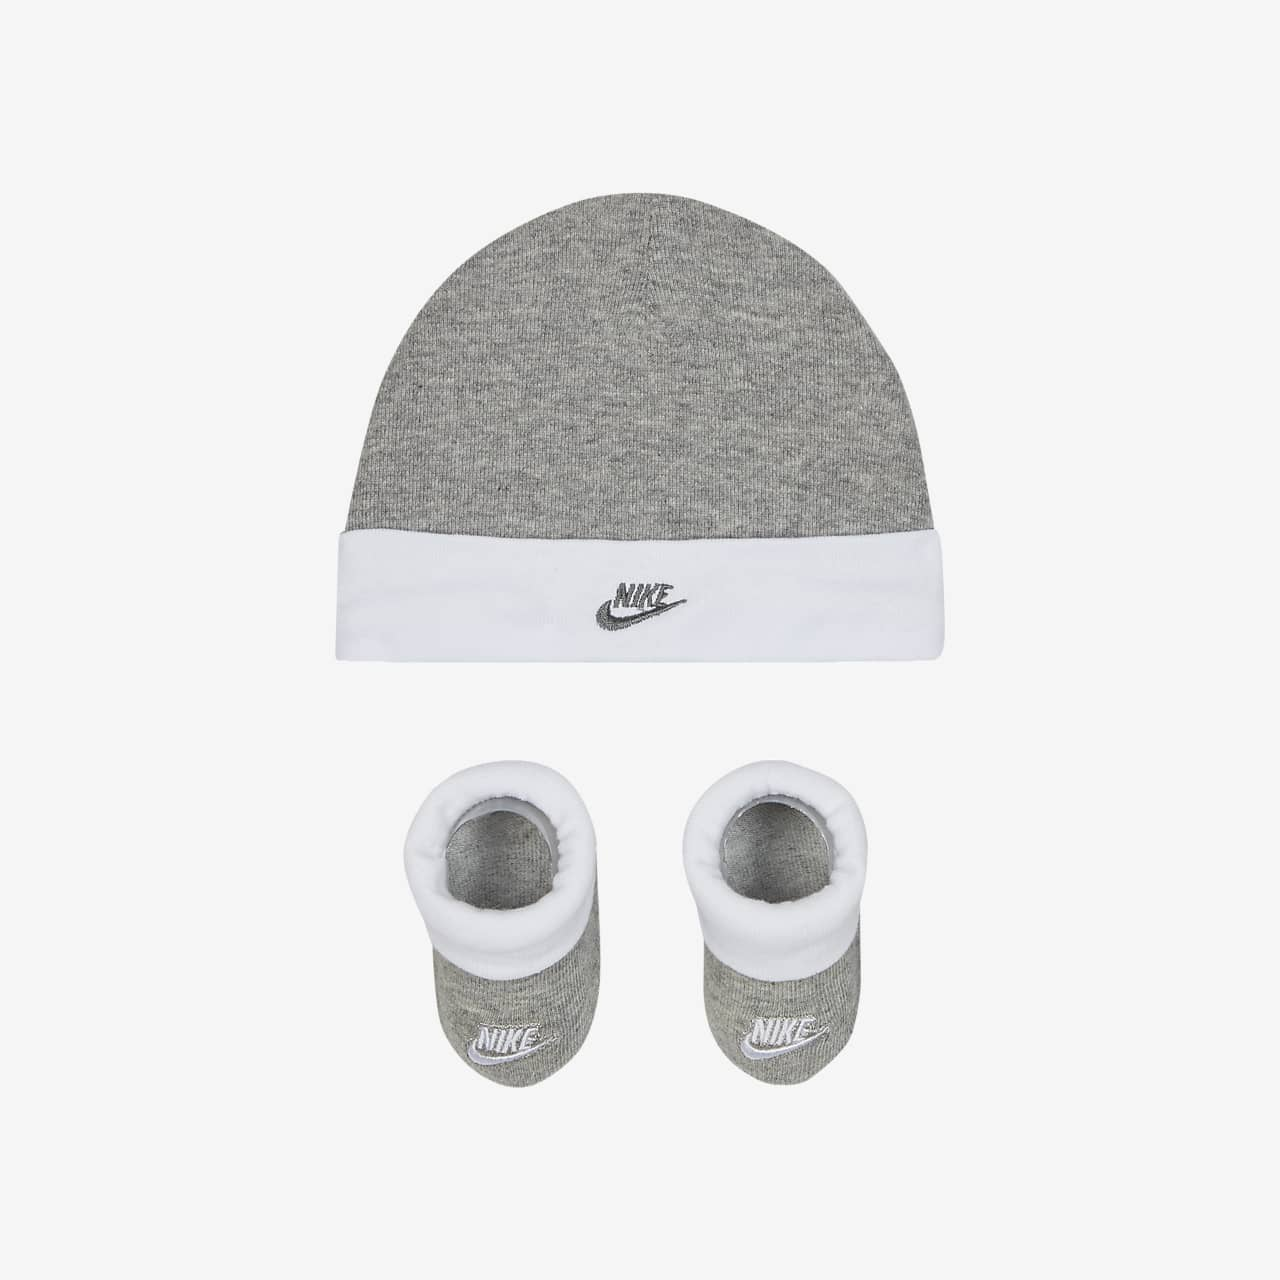 Nike Sportswear Baby Hat and Booties